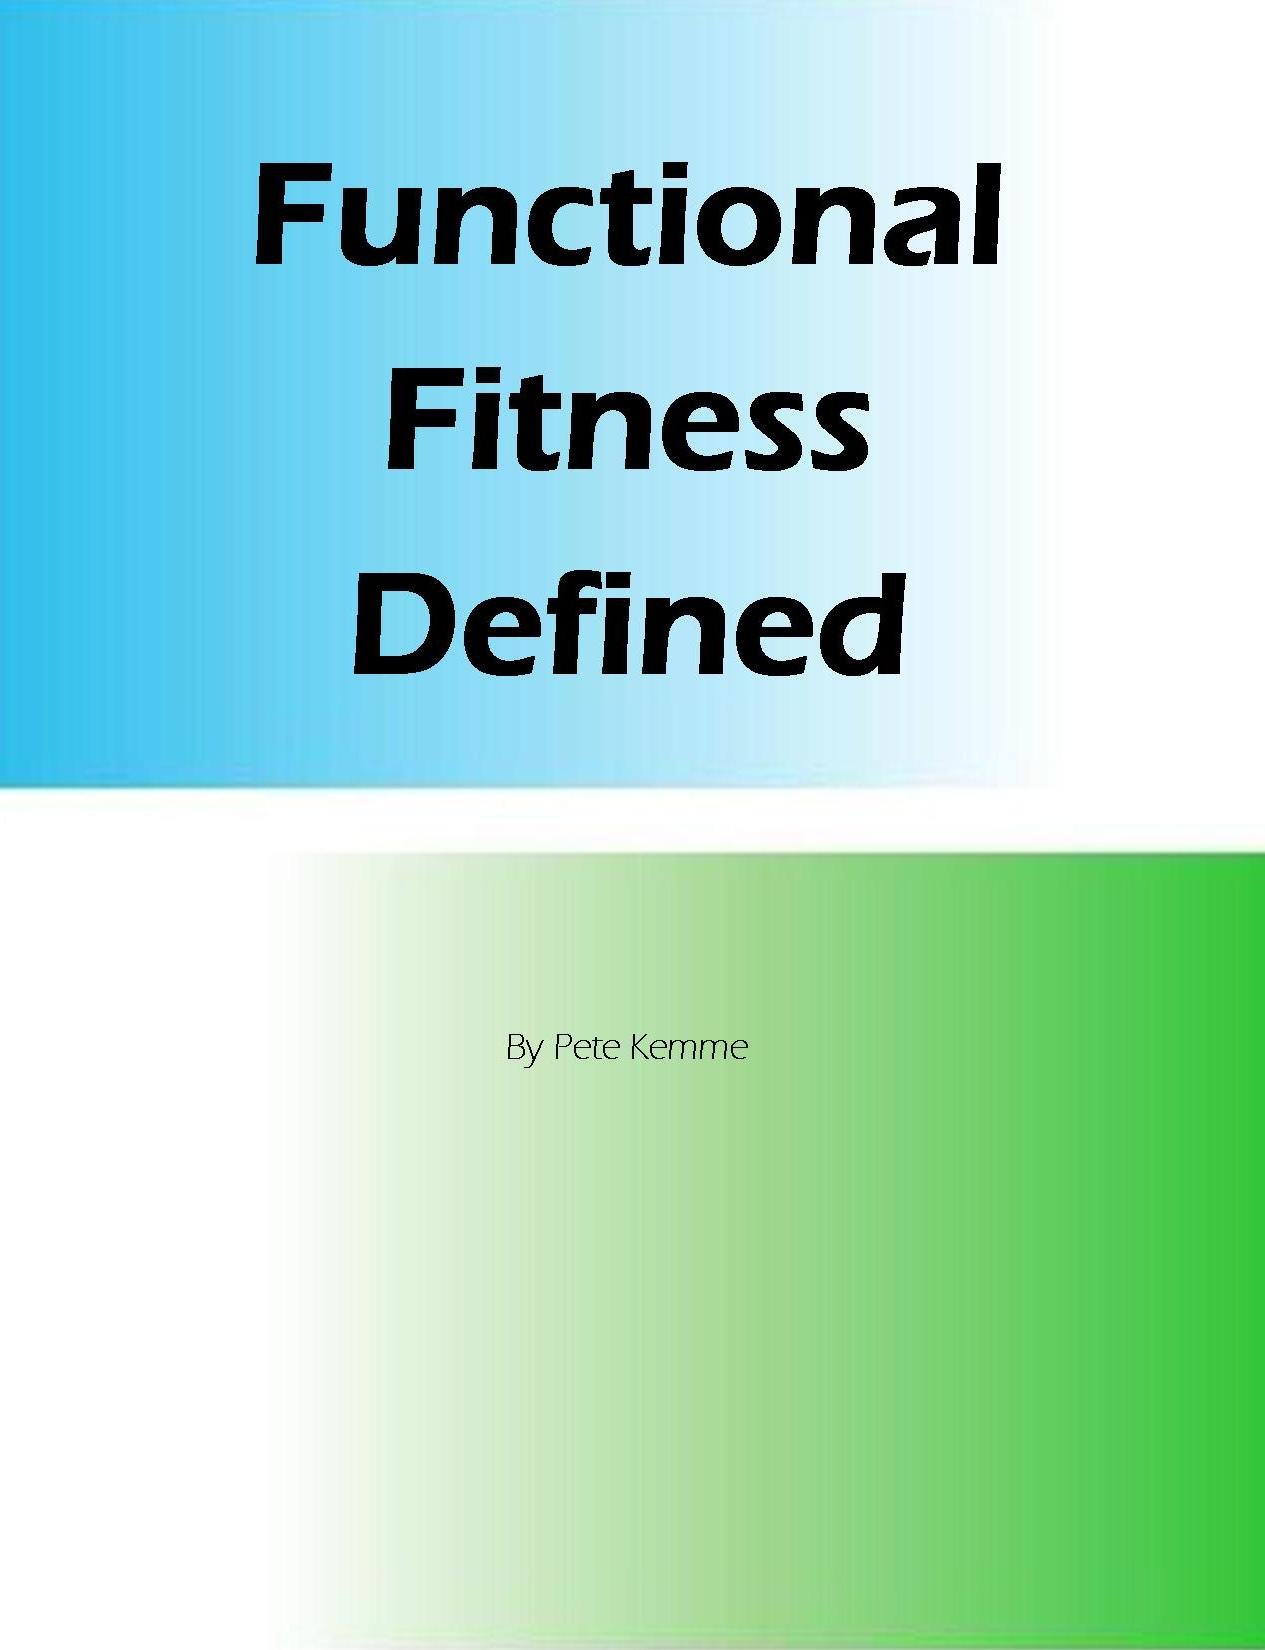 FF defined